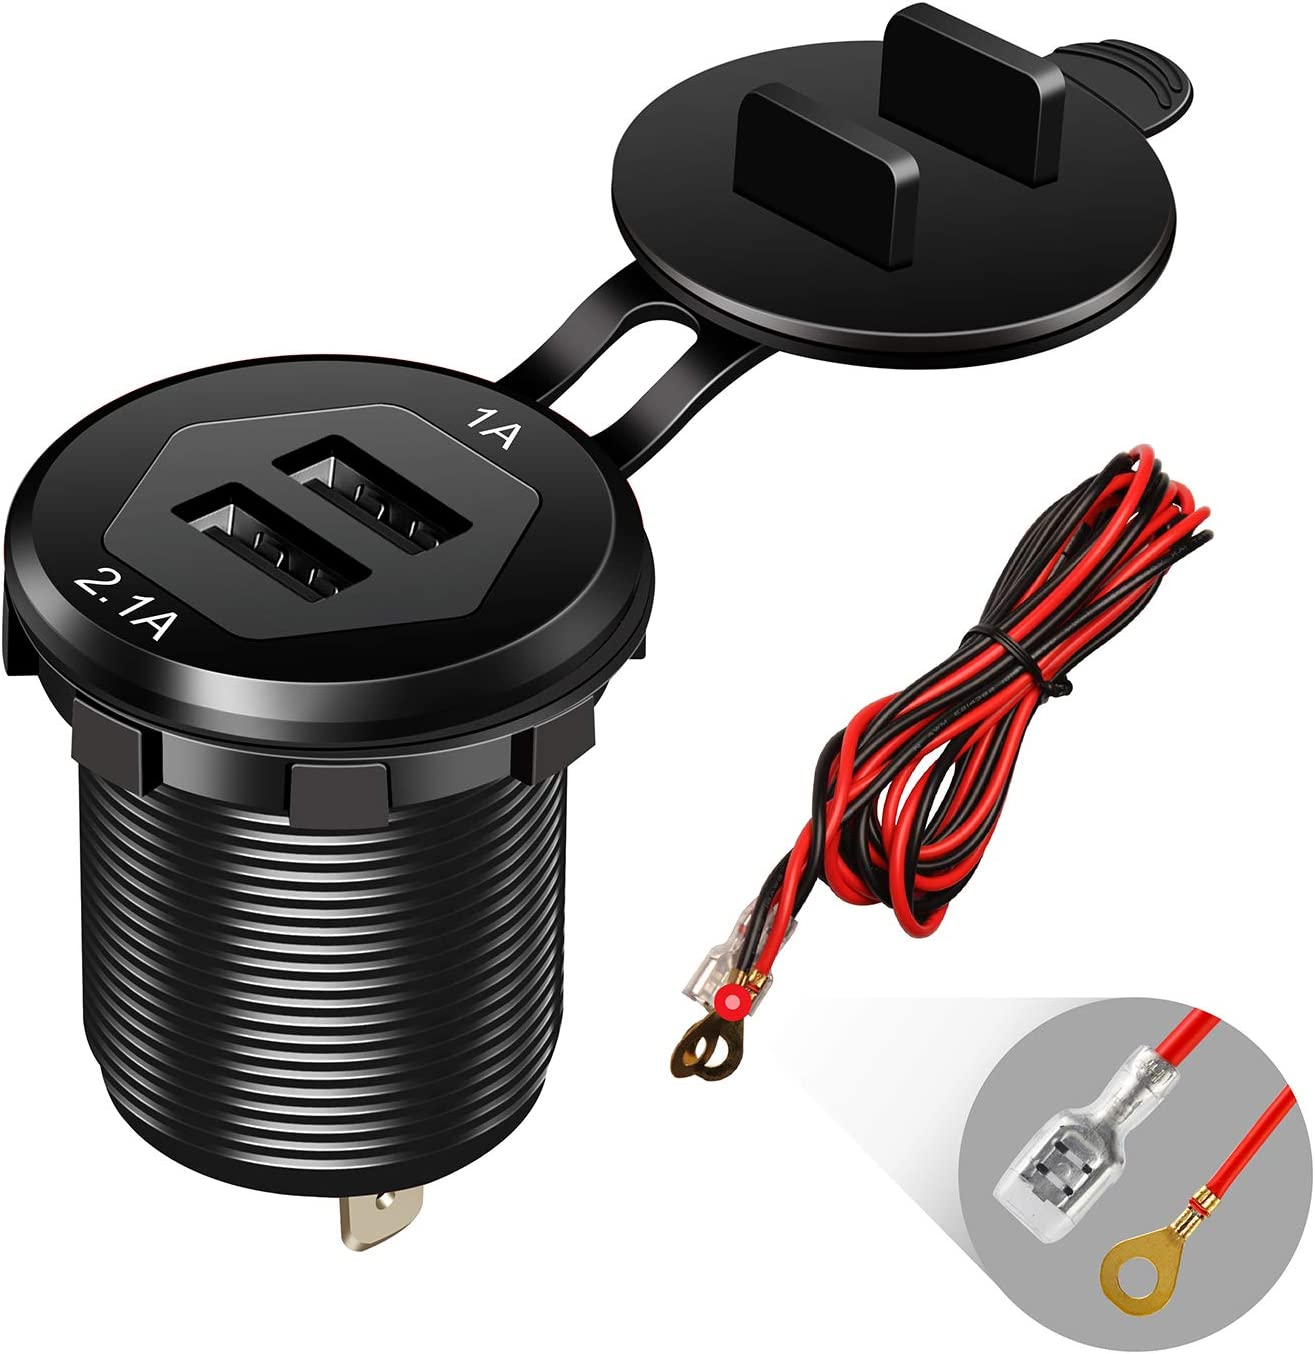 Dual USB Charger Socket Power Outlet 1A /& 2.1A(3.1A) Aluminum Waterproof Car USB Charger with Wire Fuse for Car Boat Marine RV Mobile DIY Kit 1.8M Wire Black